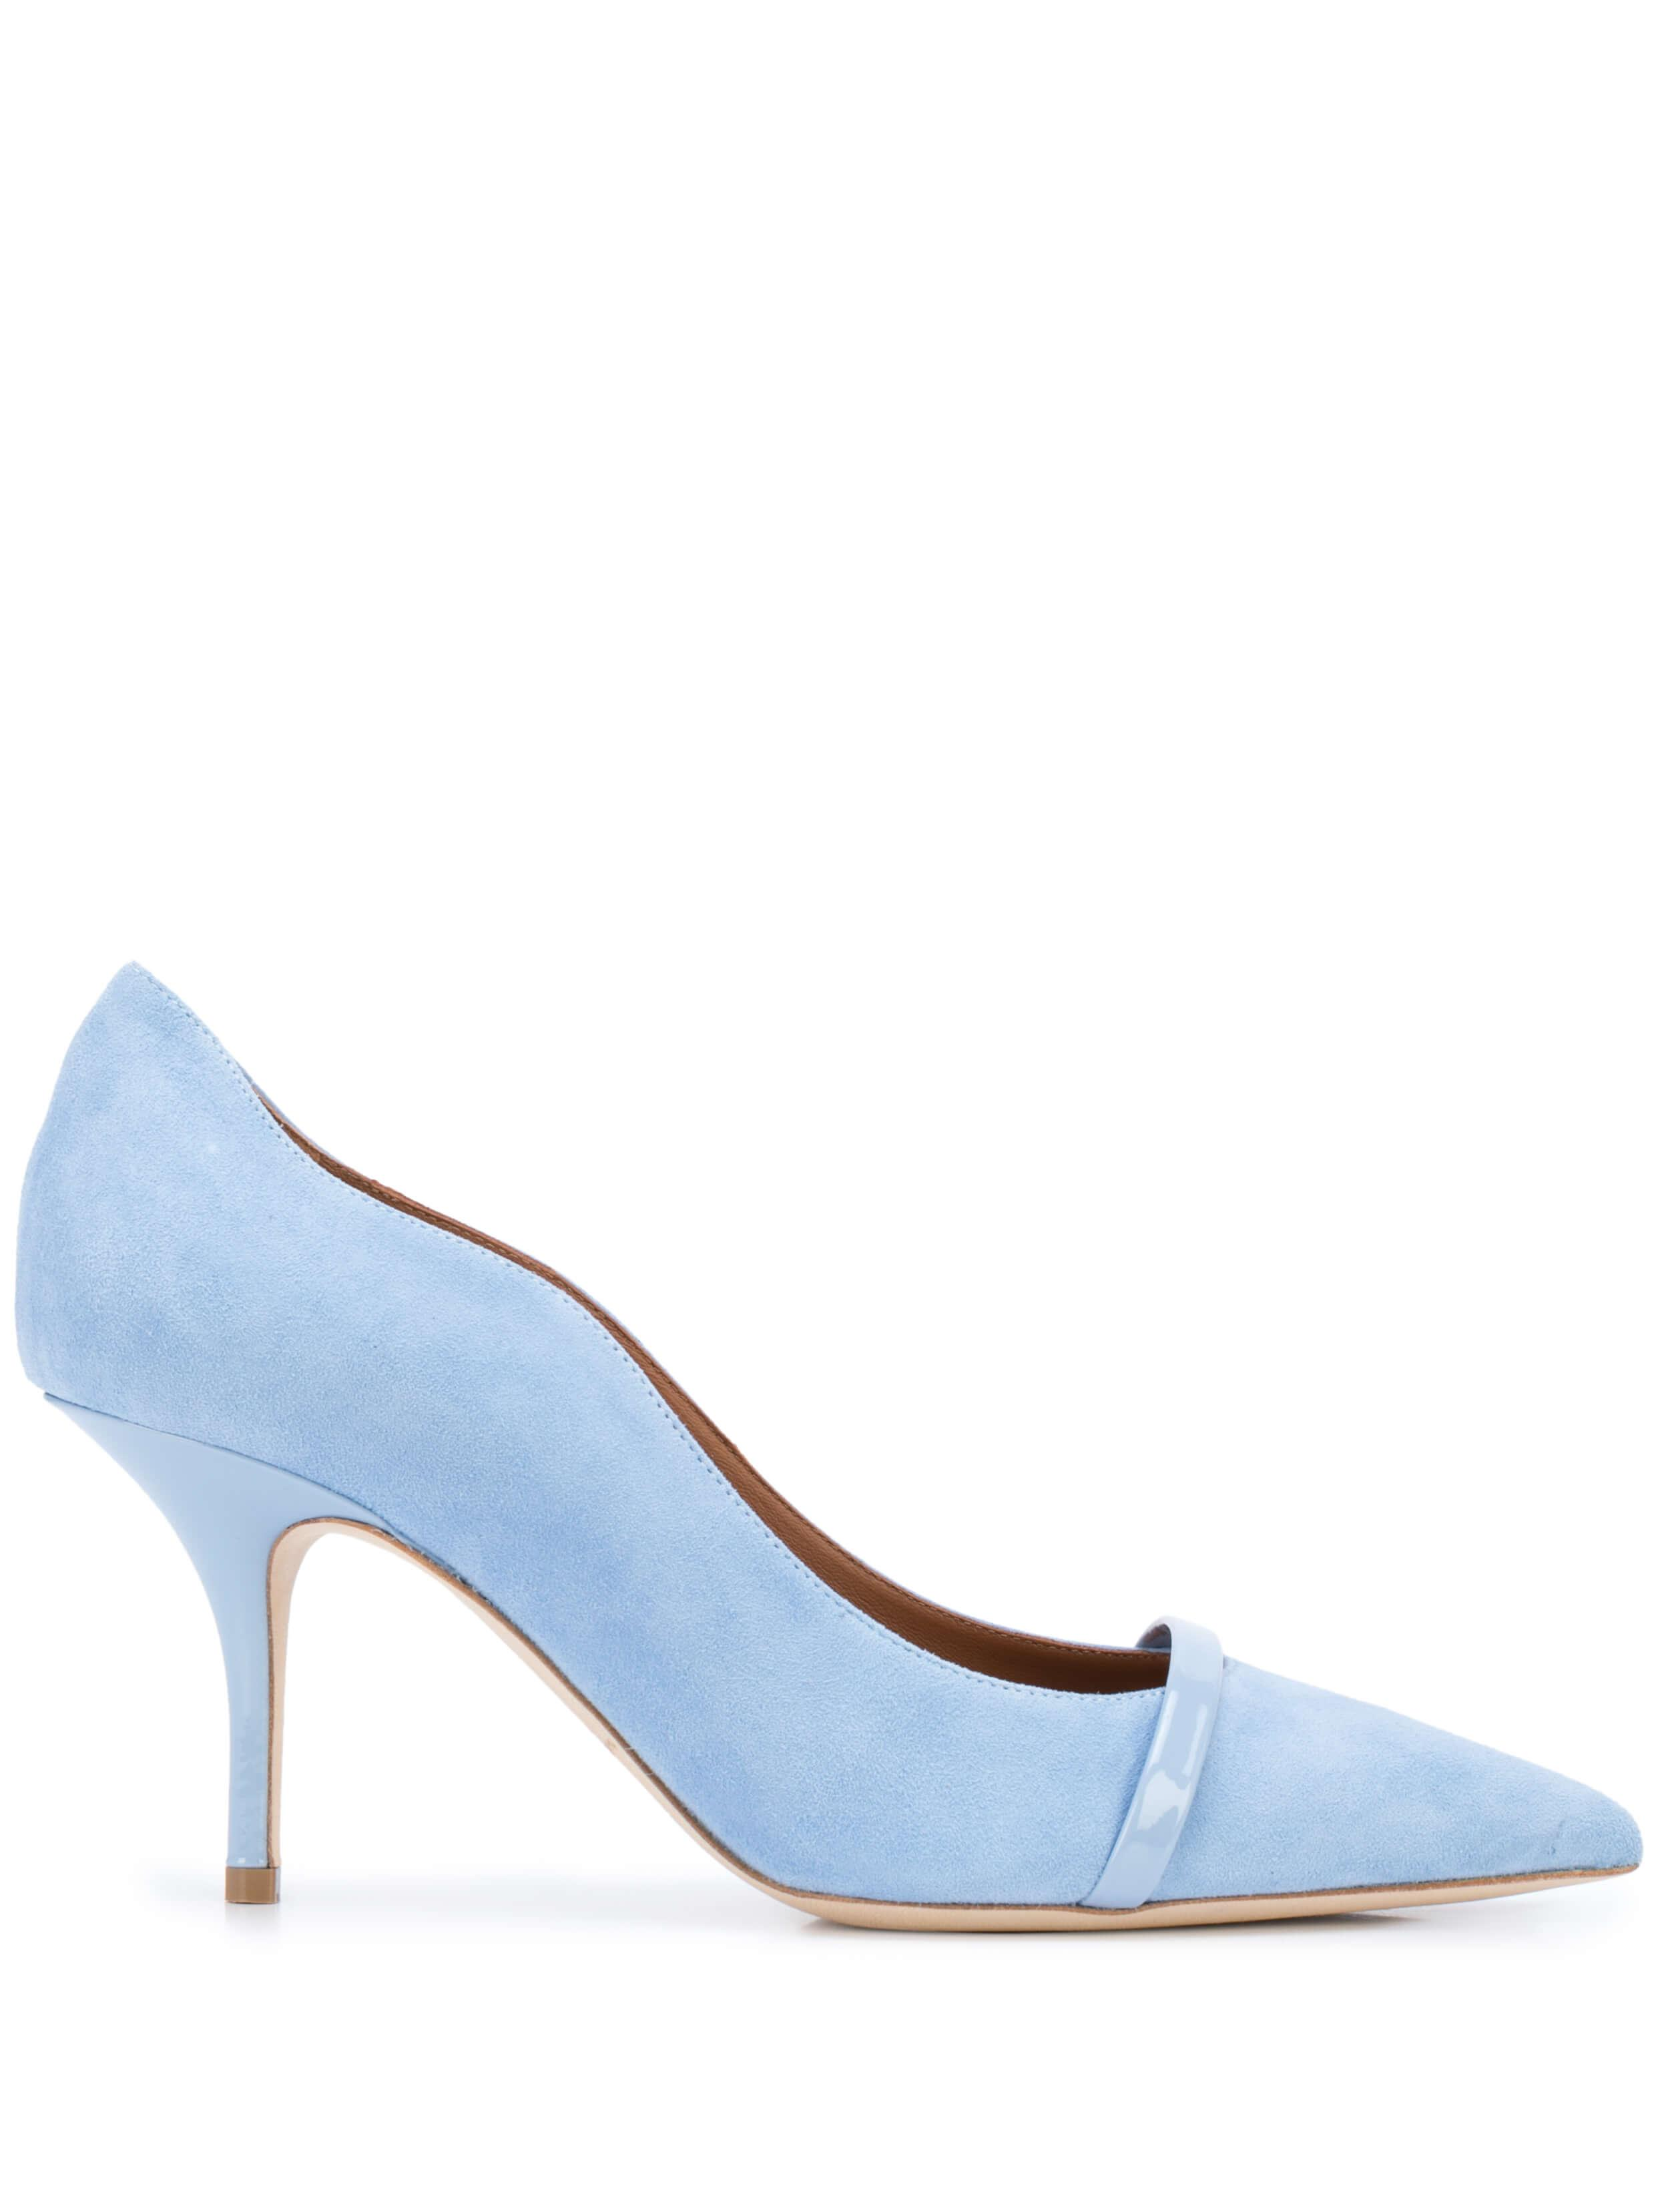 Suede/Patent 70mm Pump Item # MAYBELLE70-6